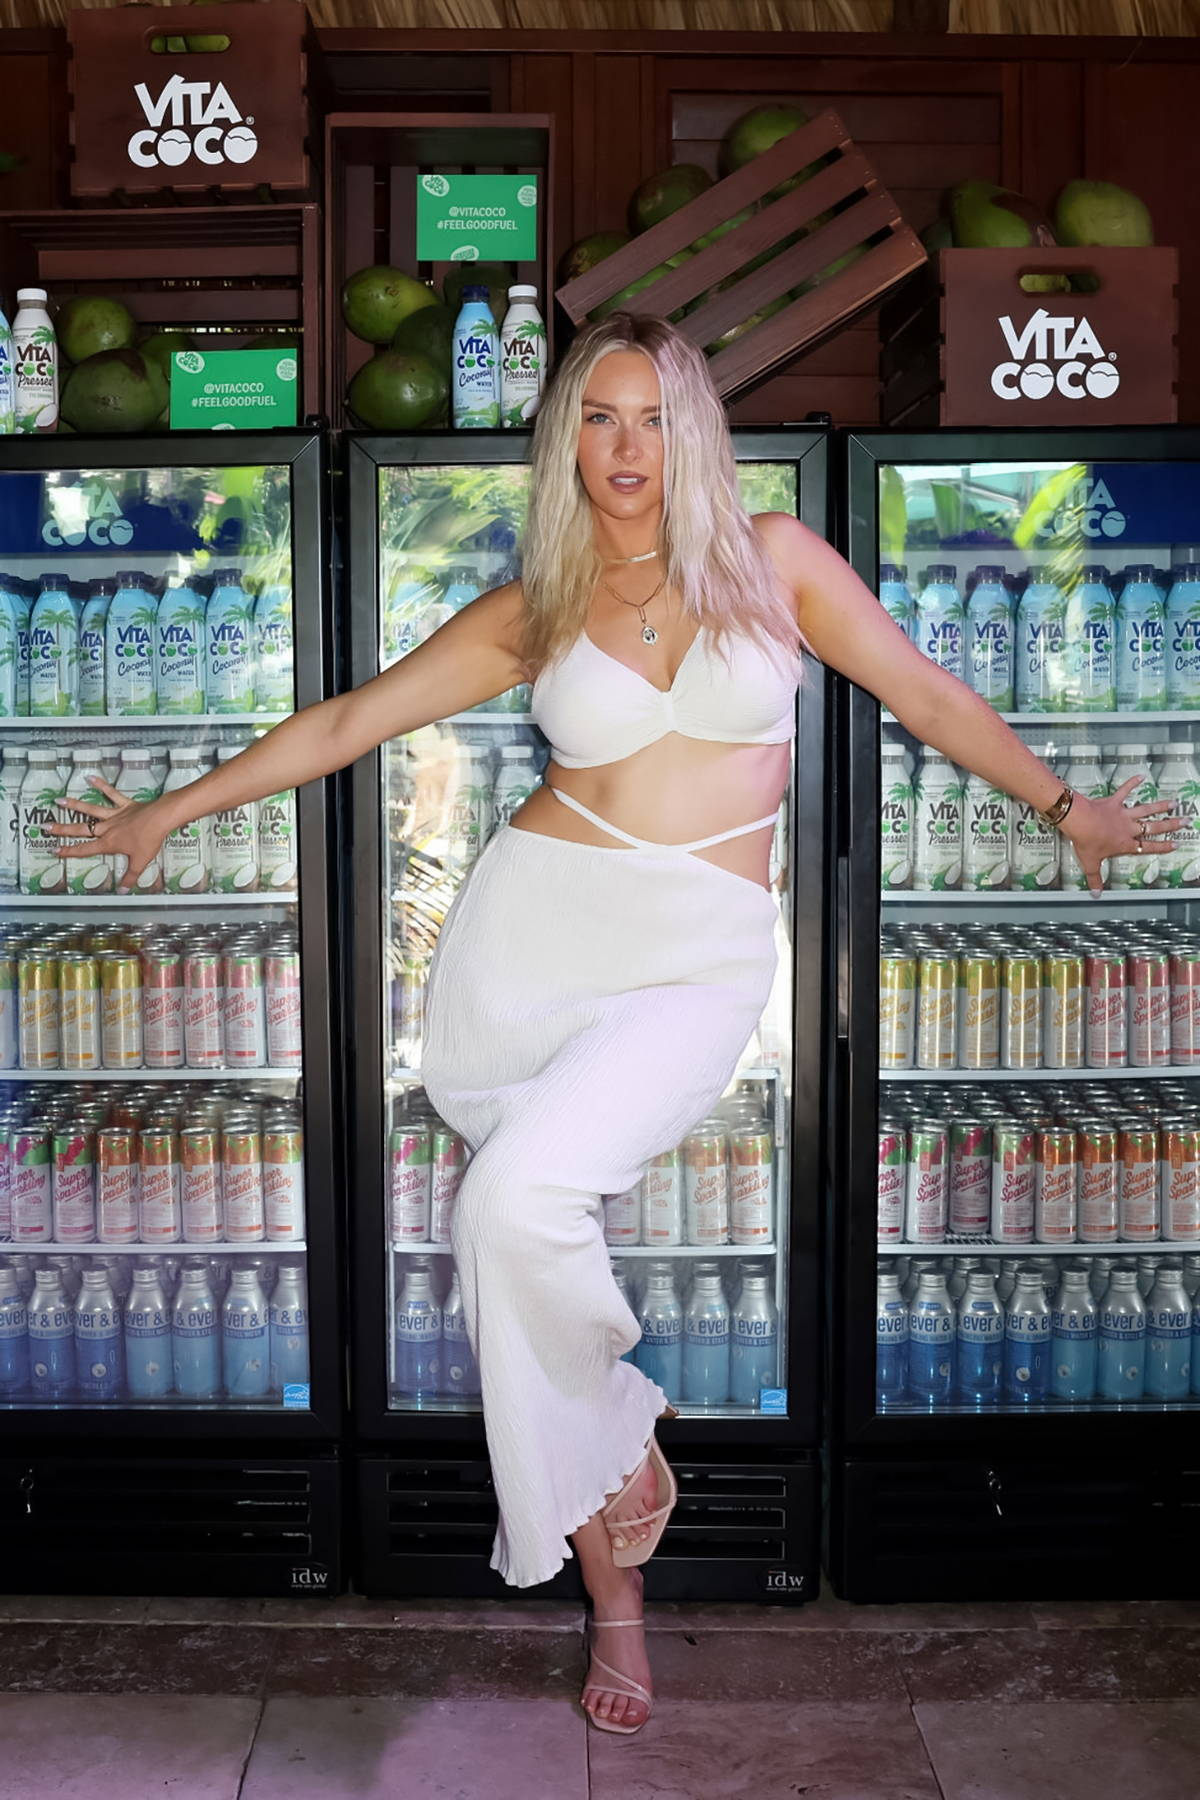 Camille Kostek attends the 2021 Sports Illustrated Swimsuit Edition launch event in Hollywood, Florida